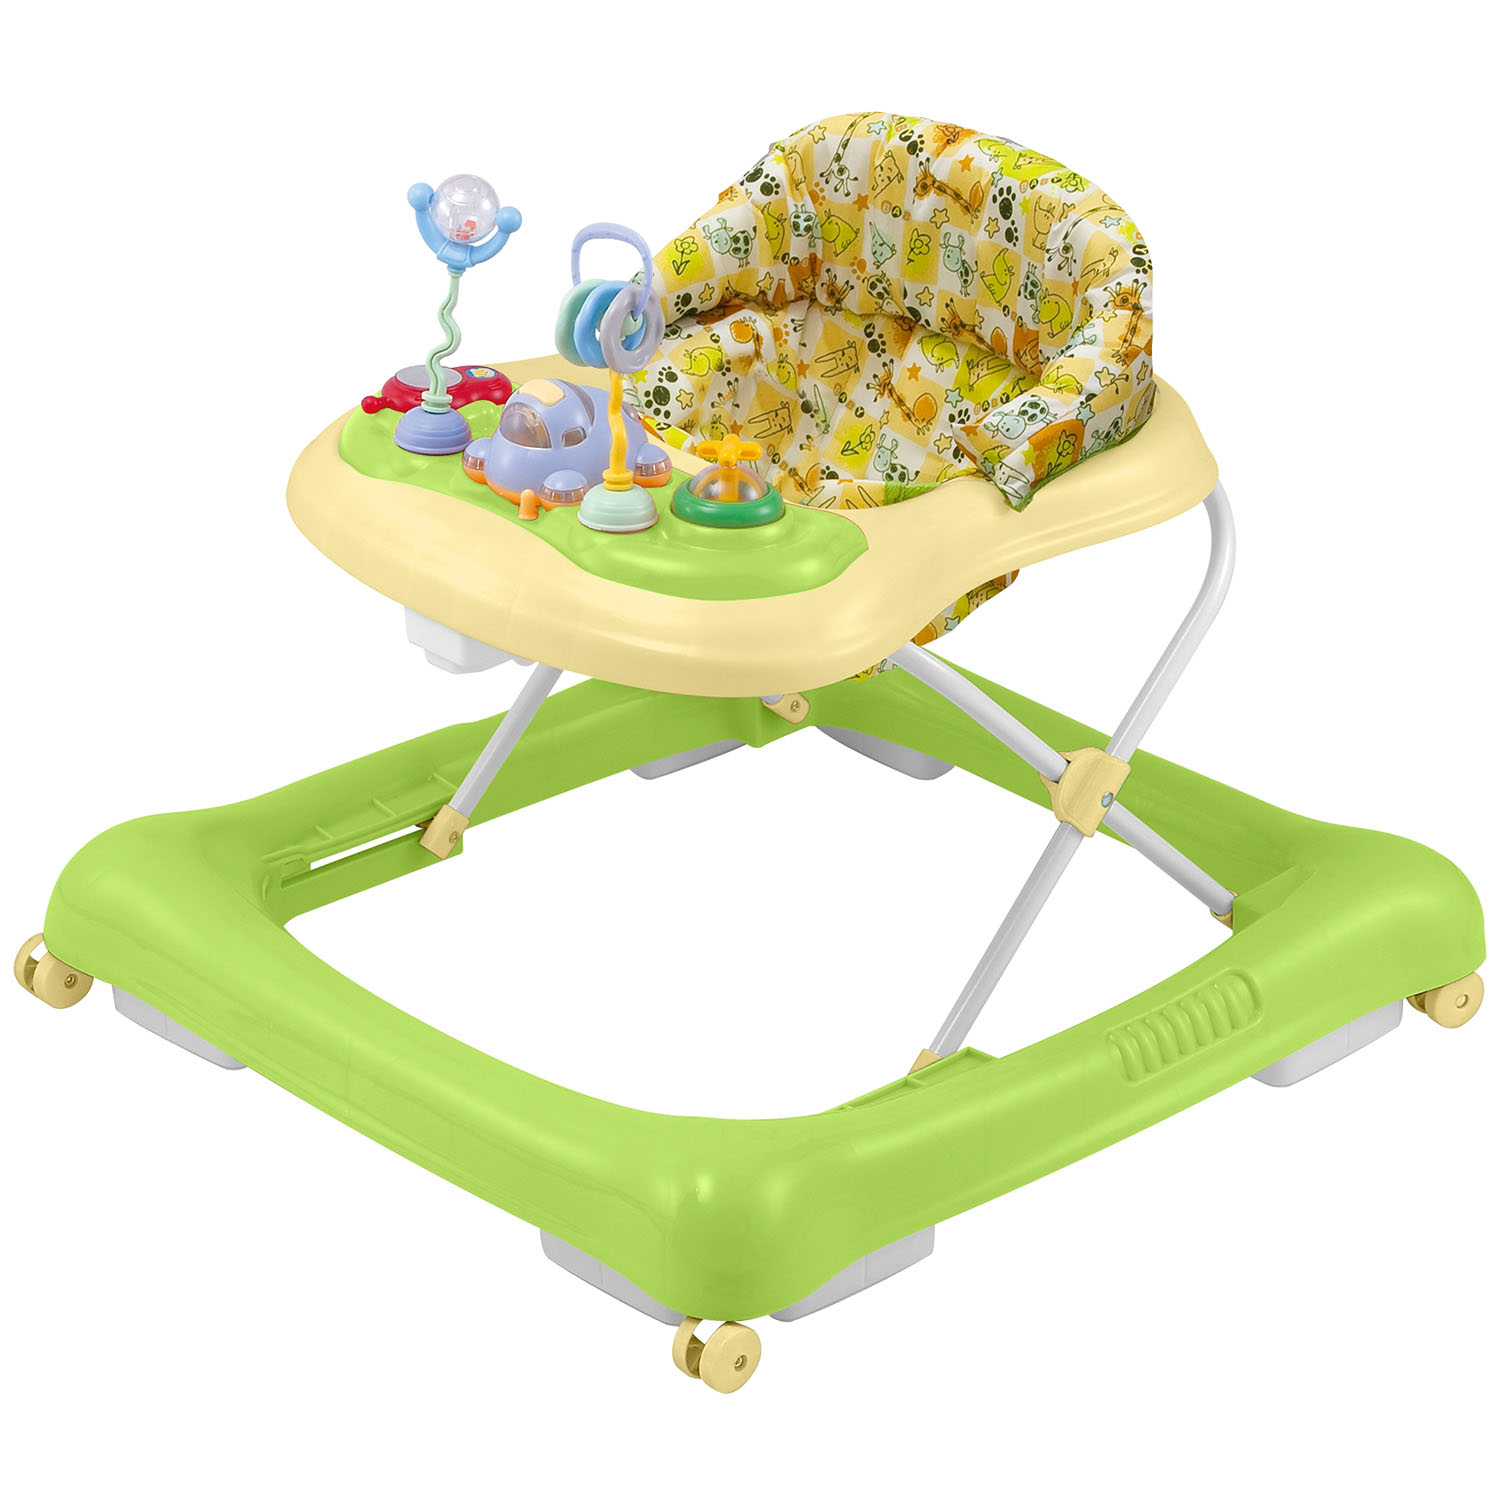 Big Oshi 2 in 1 Baby Walker & Activity Center on Wheels Musical Walker with Tray Table Baby Activity Center... by Big Oshi